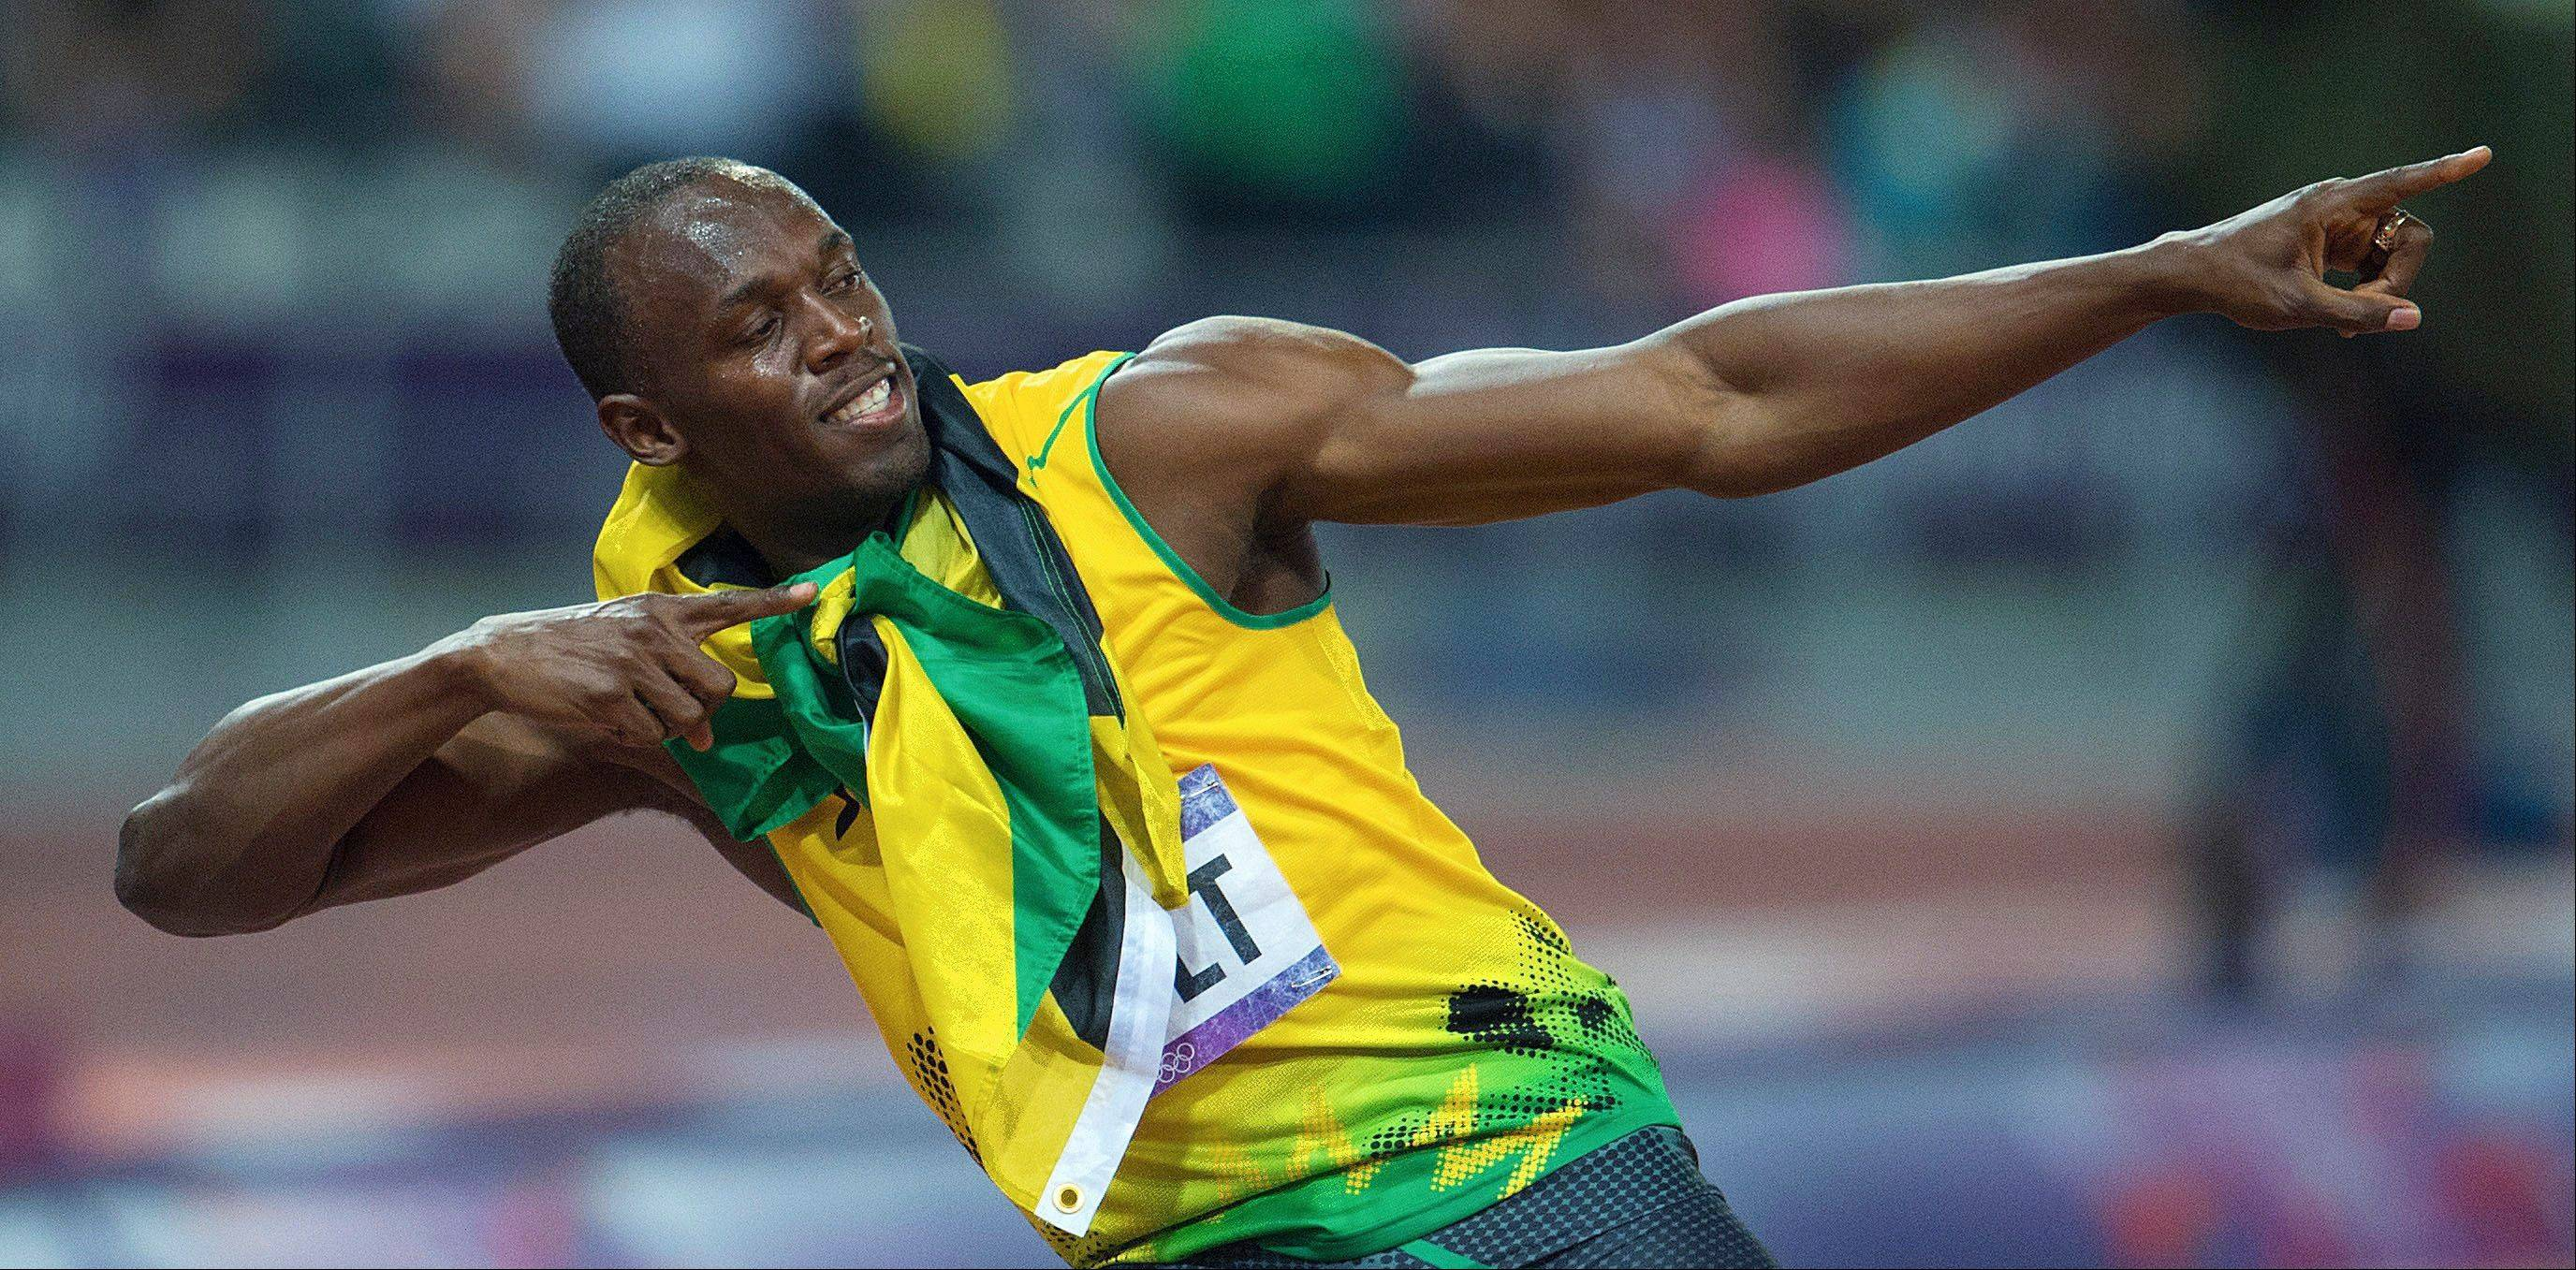 Jamaica's Usain Bolt poses after his win in the men's 200 meters at the Summer Olympics in London. Several Olympic sprinters have played in the NFL after successful careers on the track.